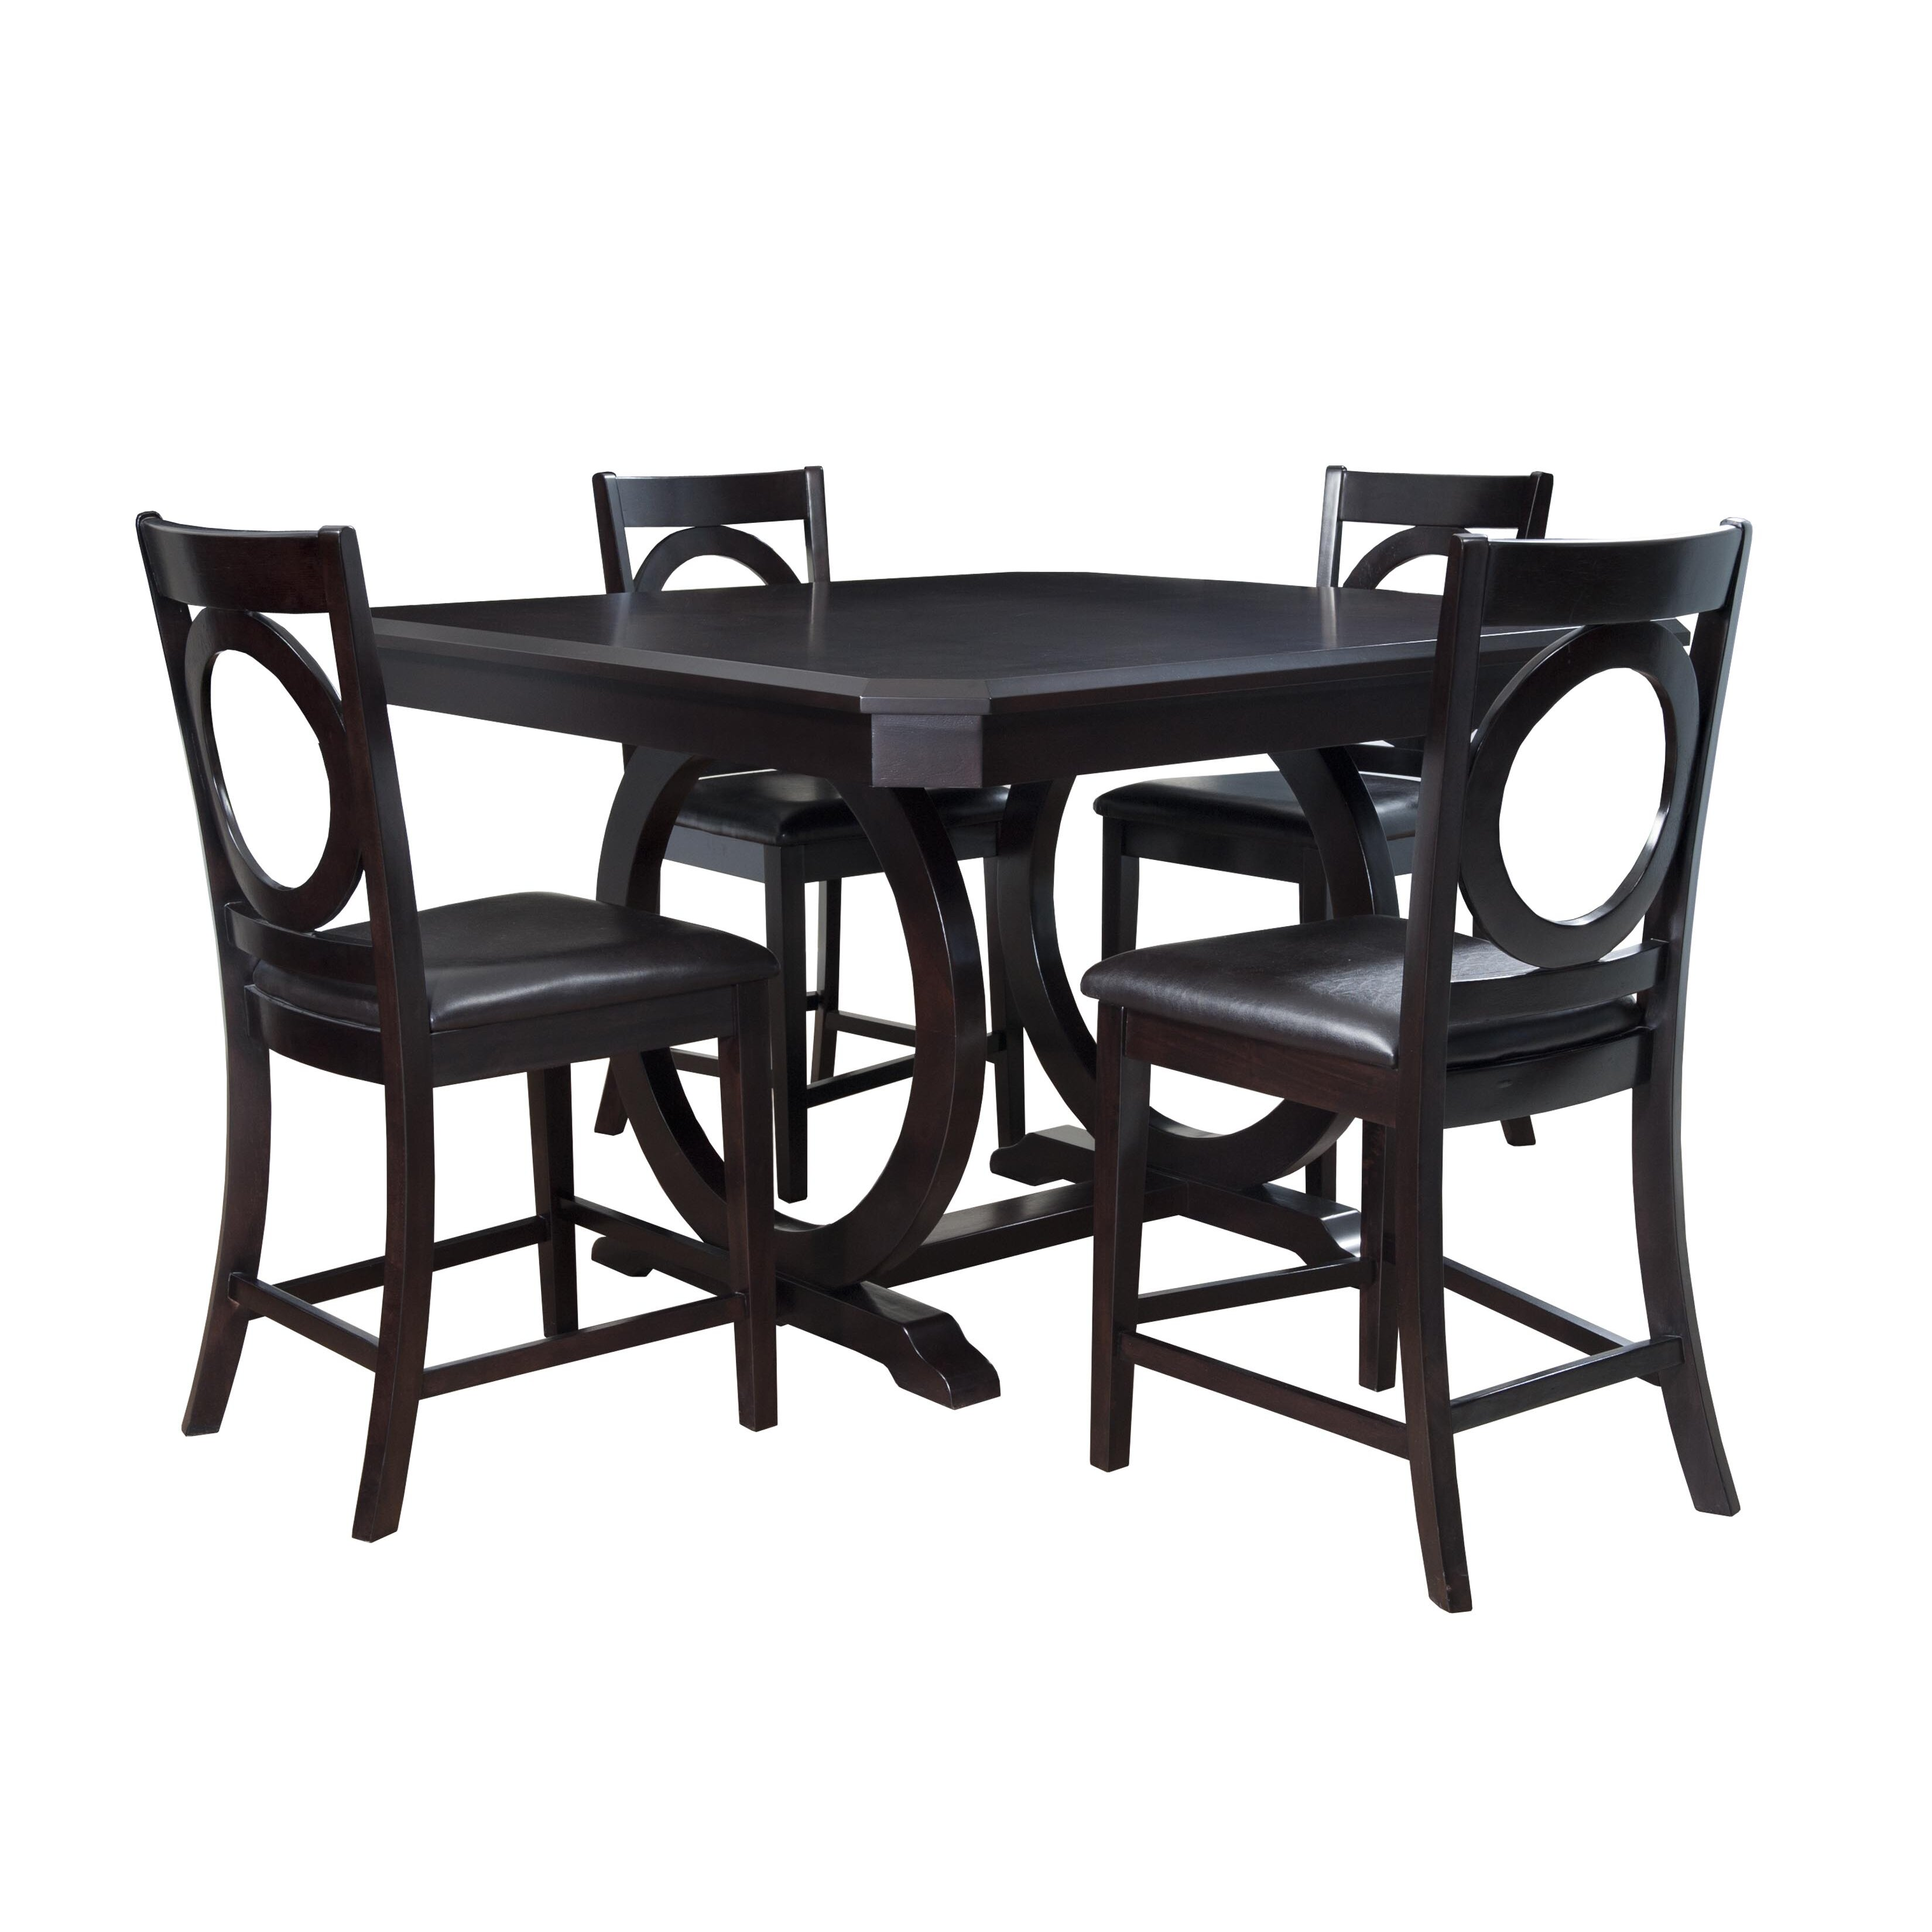 Counter Height Dining Sets 5 Piece : Powell Furniture Brigham 5 Piece Counter Height Dining Set